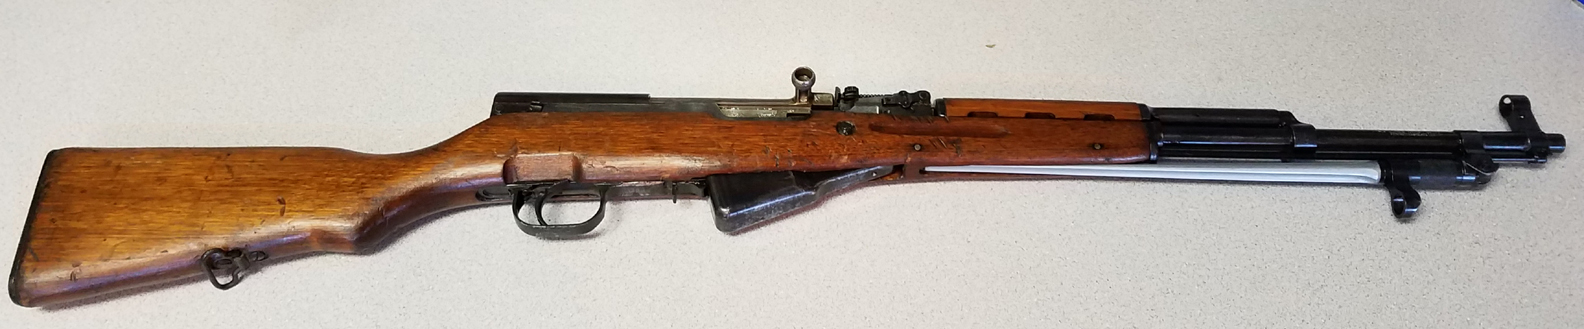 Another SKS Type 56 from Classic Firearms :) - AR15 COM